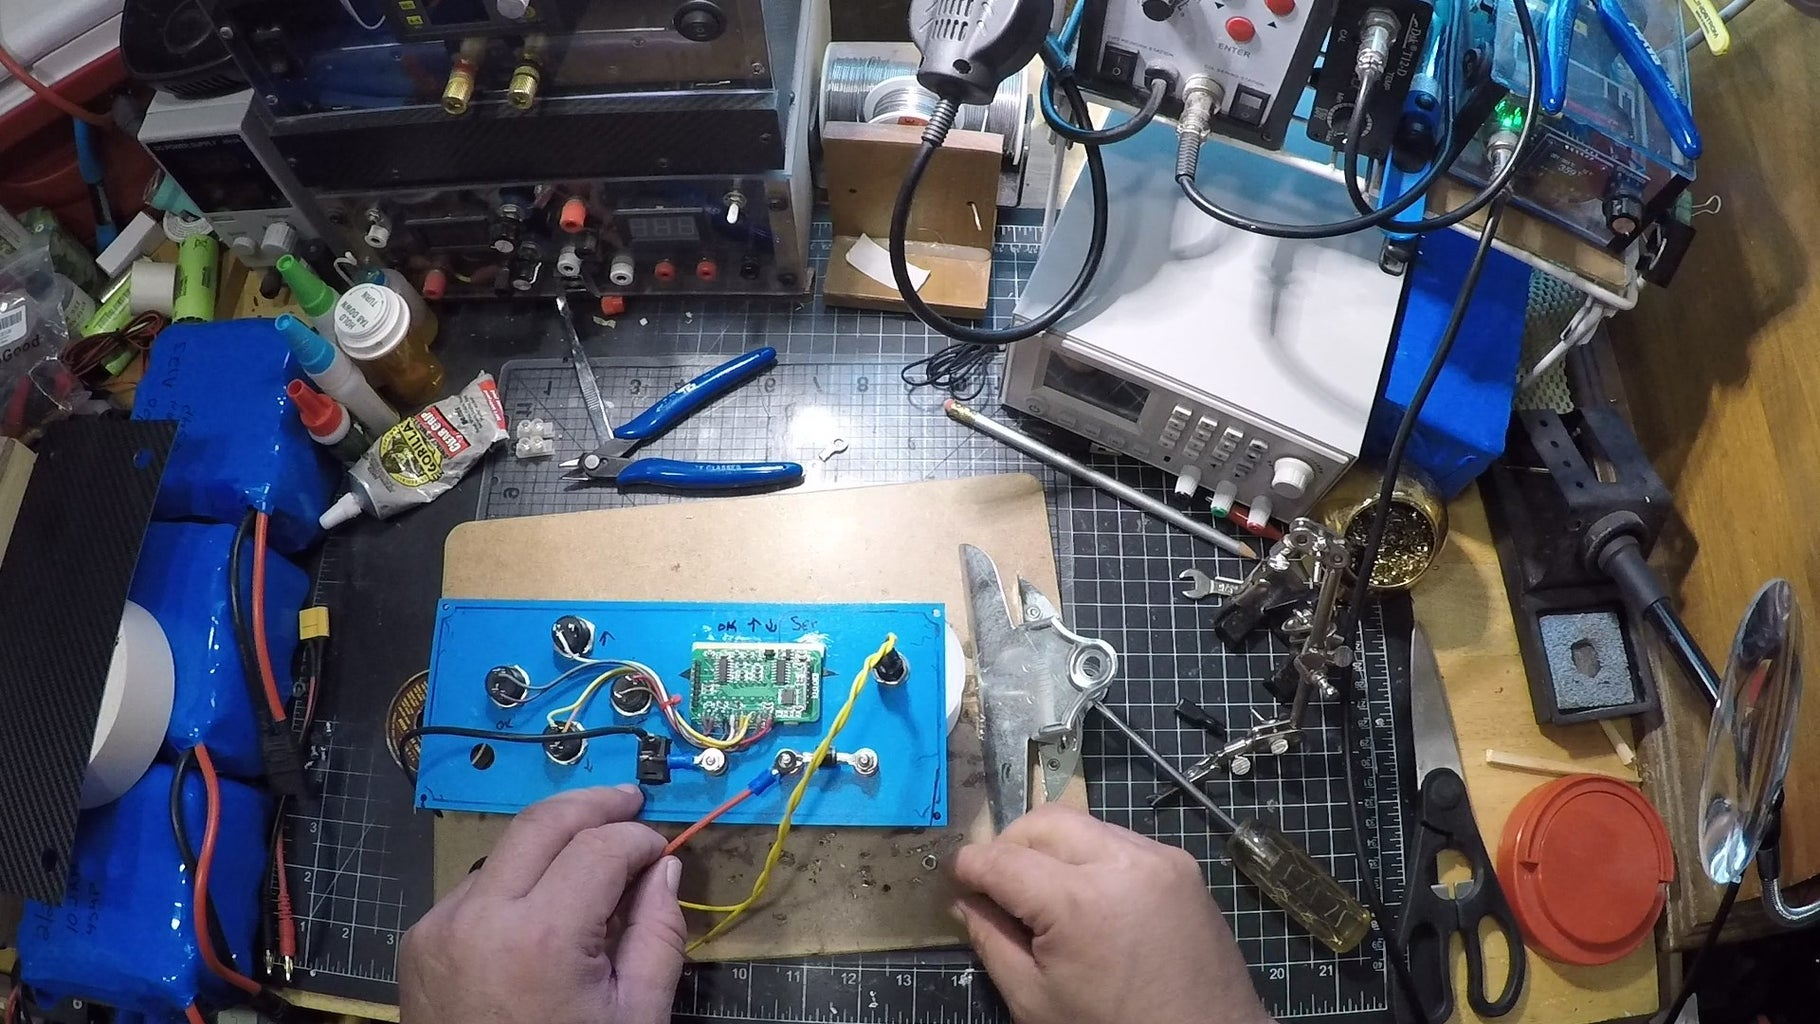 Solder the Main Wires That Go to the D3808 & Front Panel